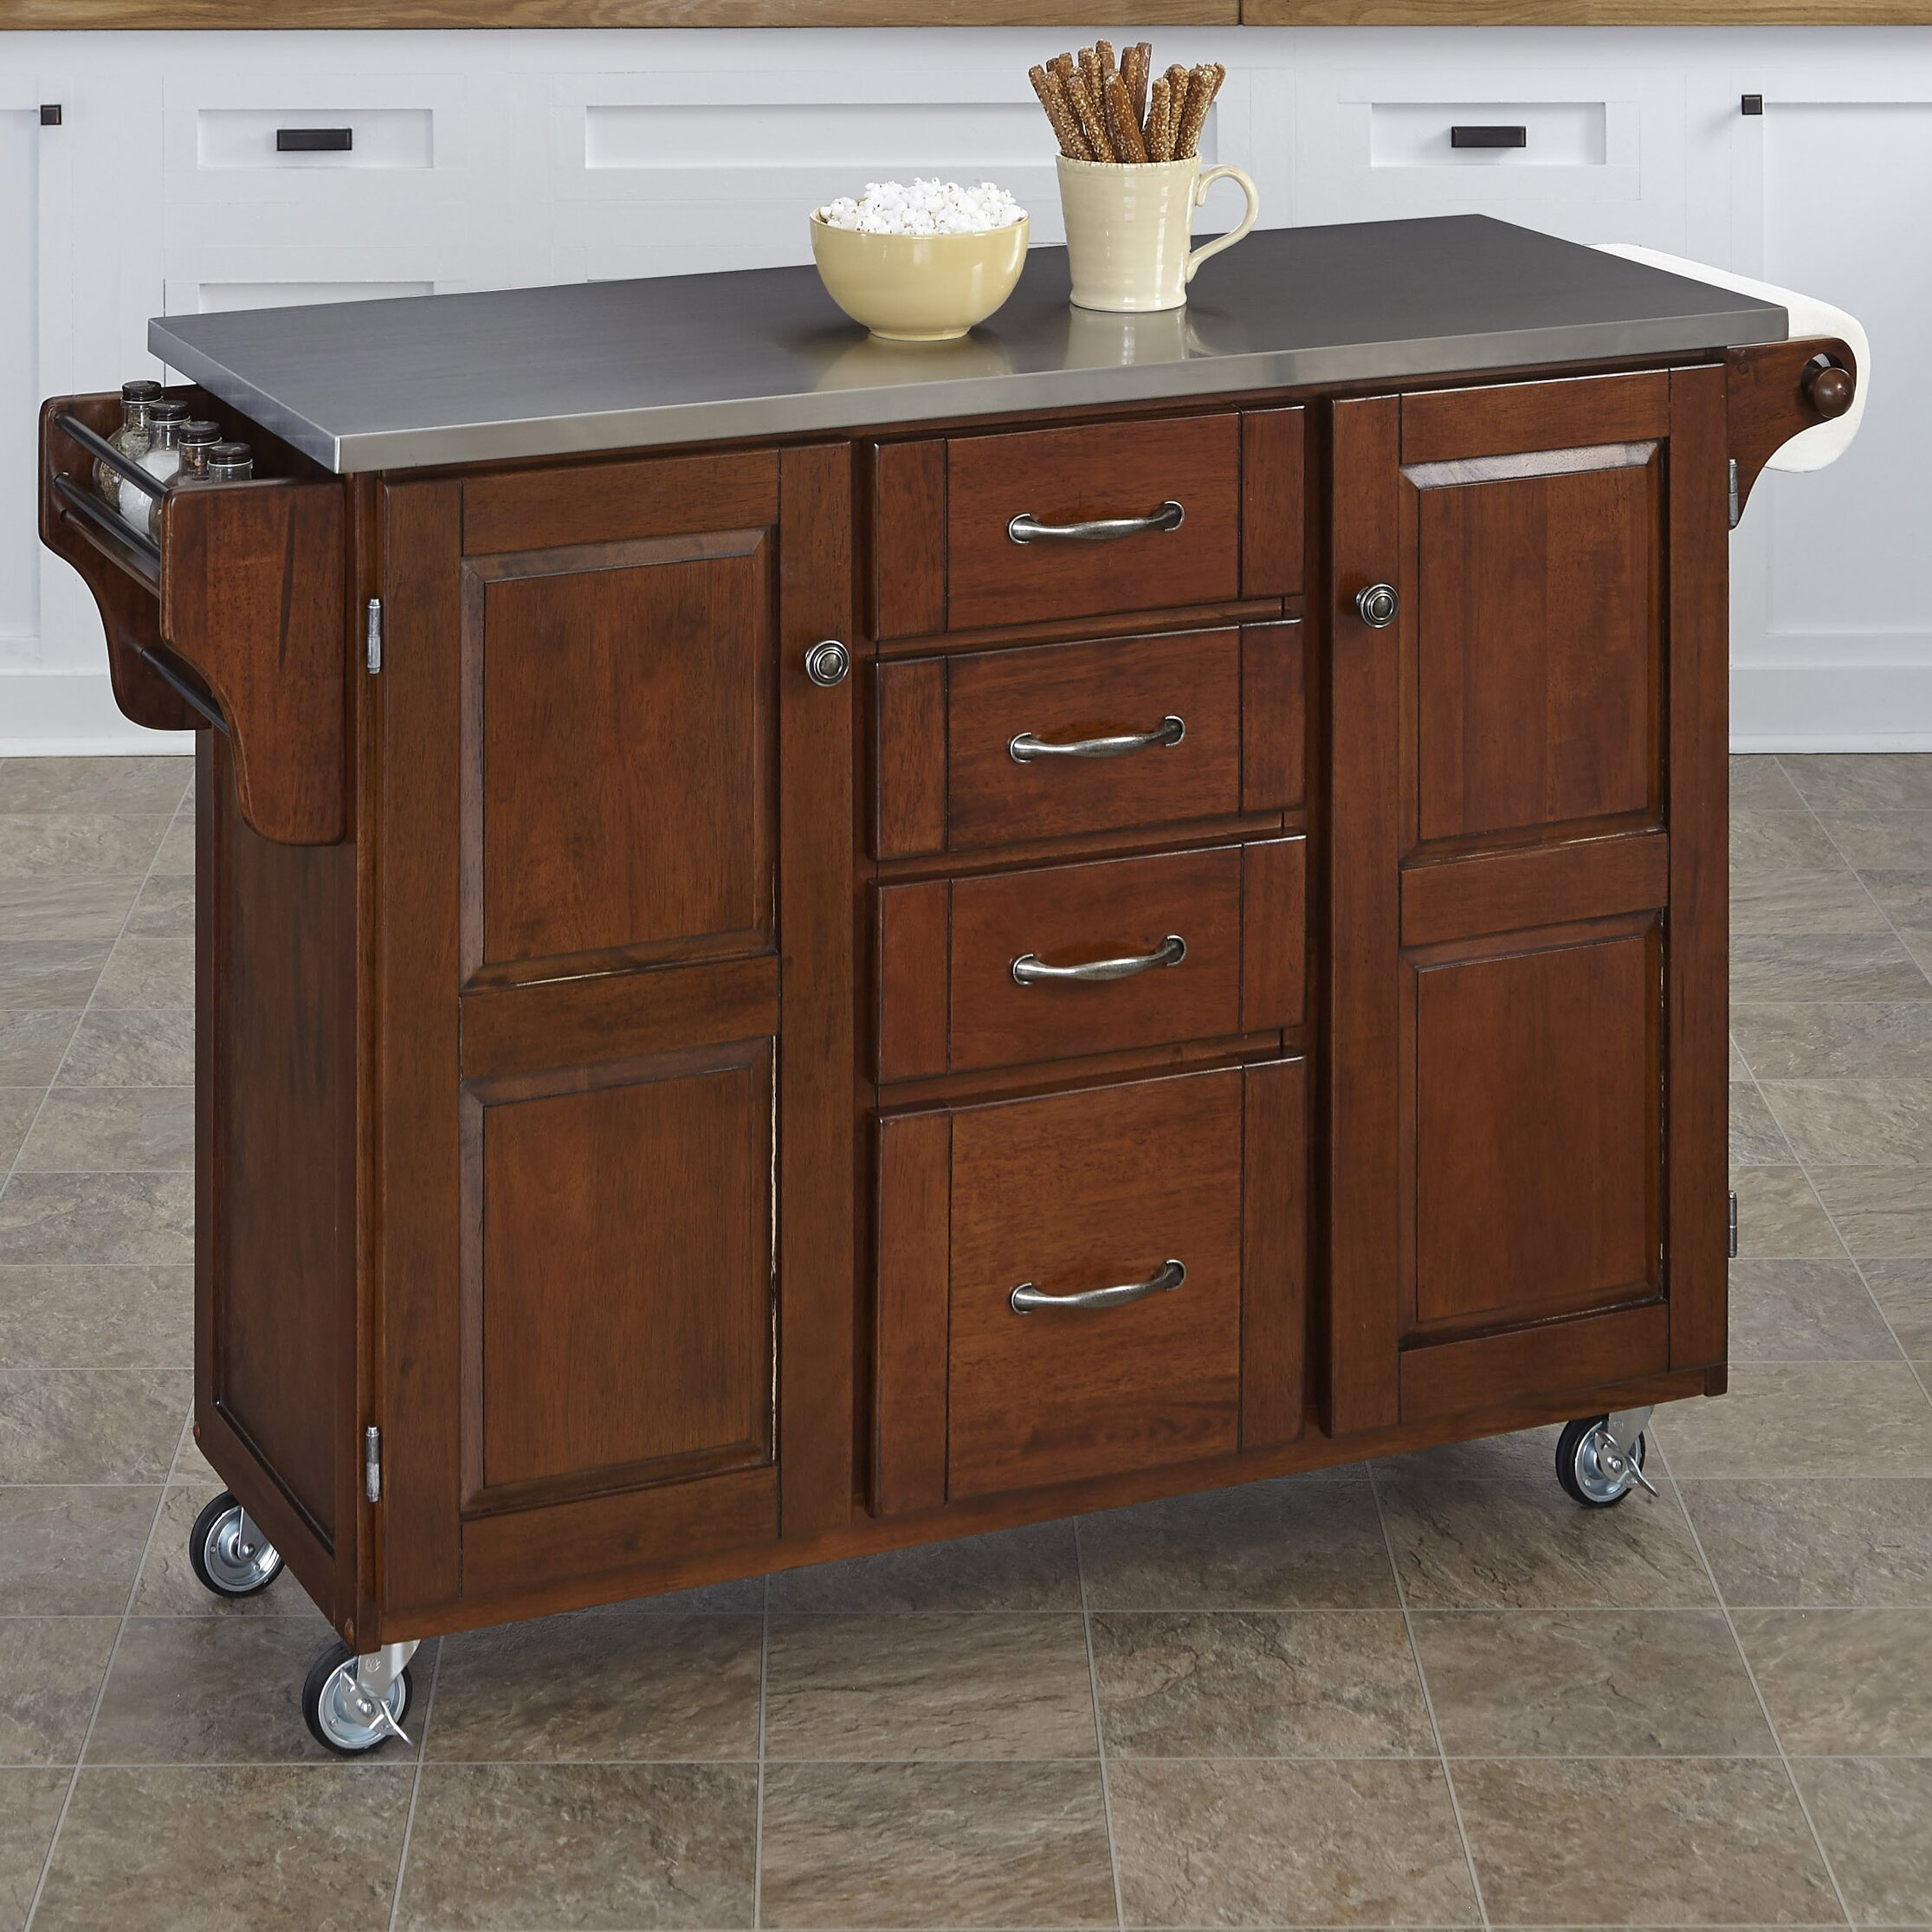 create a cart kitchen island with stainless steel top wayfair. Black Bedroom Furniture Sets. Home Design Ideas